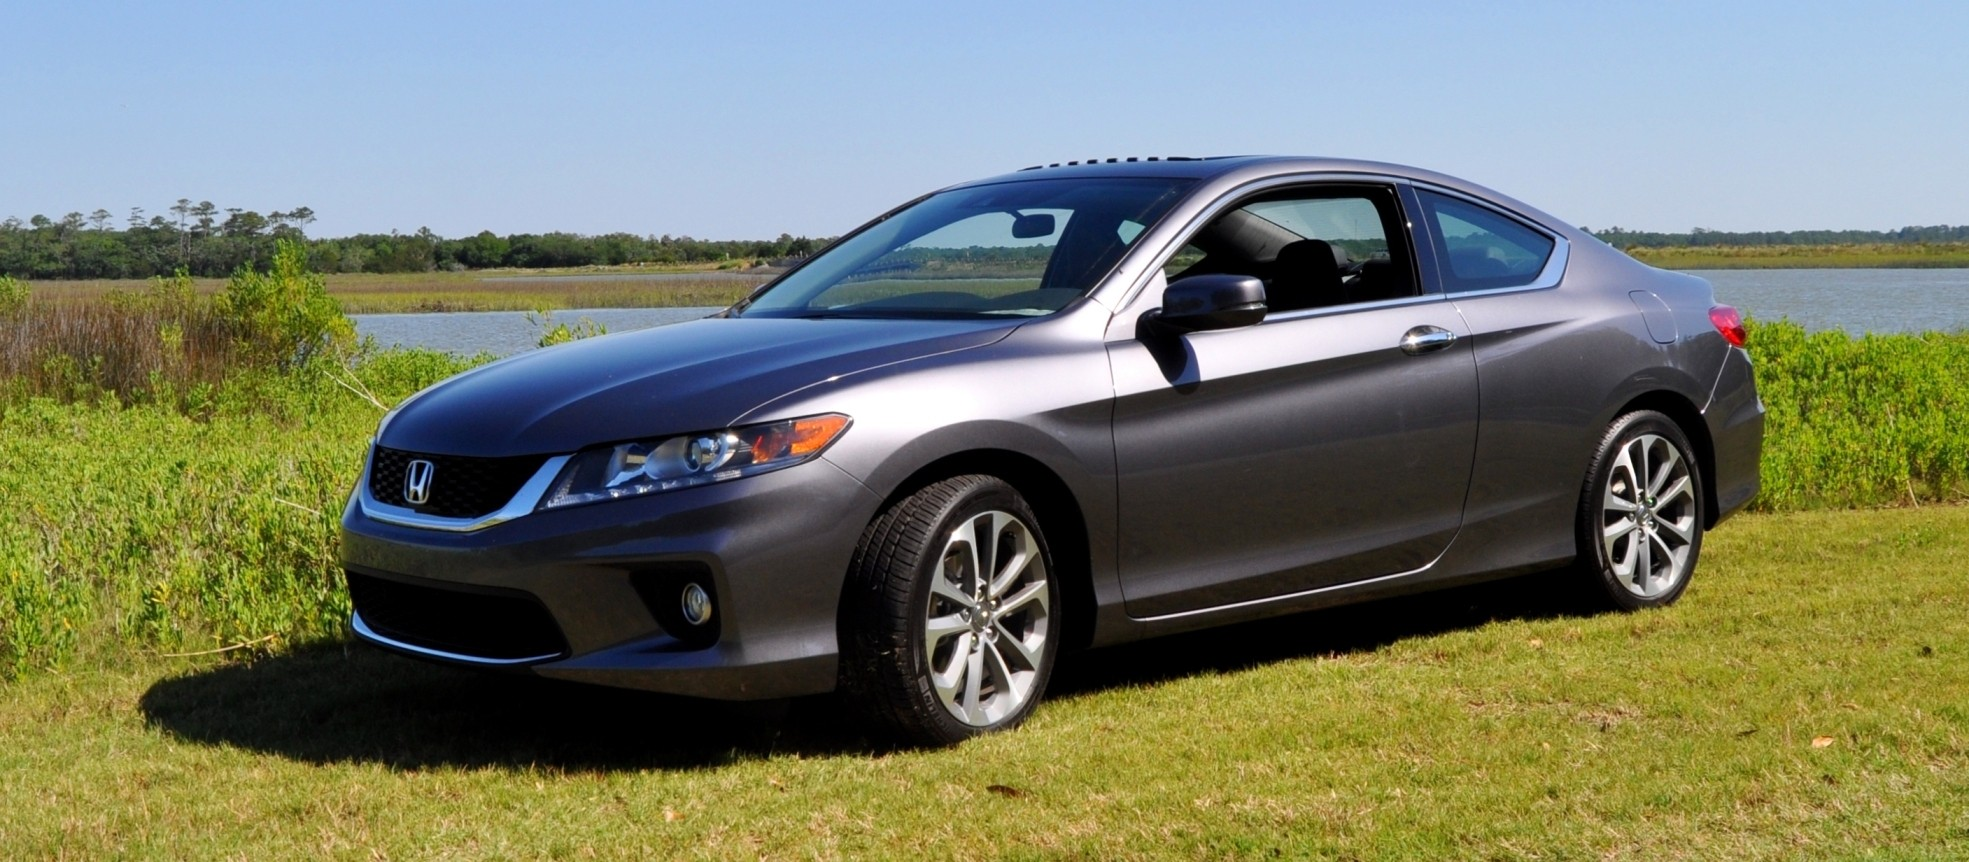 2013 honda accord ex l navi sedan review price specs html autos weblog. Black Bedroom Furniture Sets. Home Design Ideas